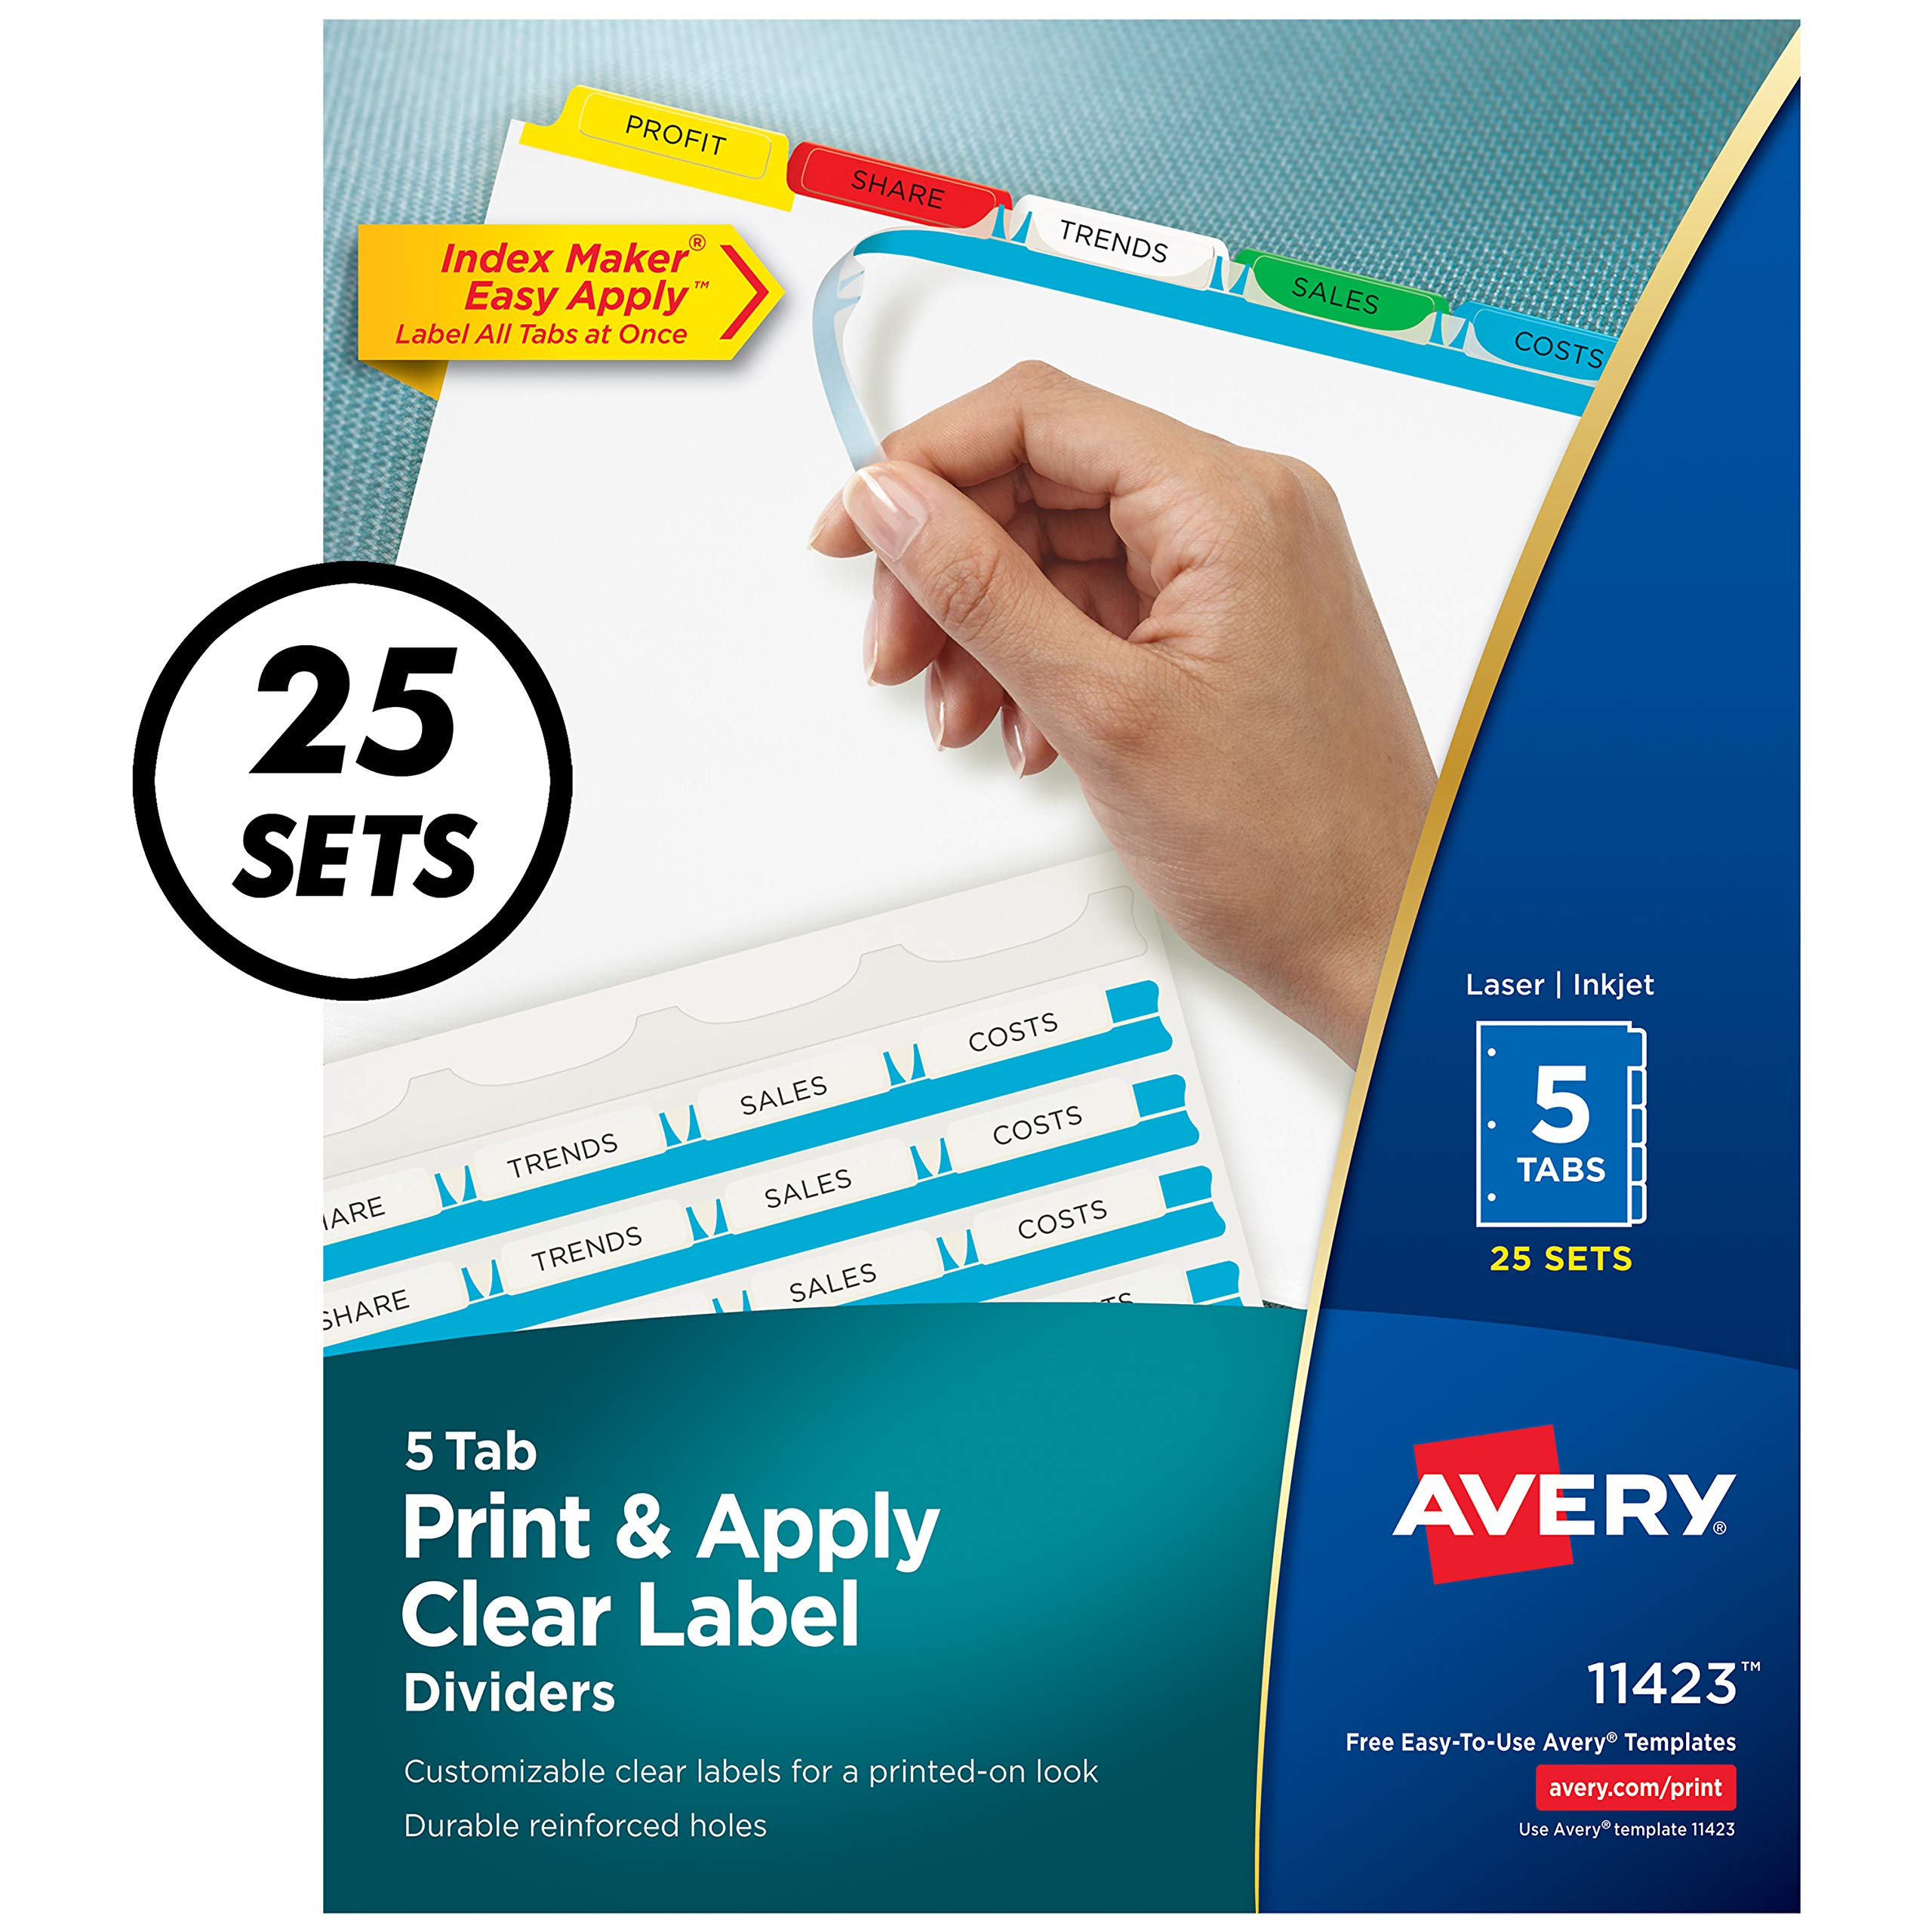 Avery 5-Tab Binder Dividers, Easy Print & Apply Clear Label Strip, Index Maker, Multicolor Tabs, 25 Sets (11423) by AVERY